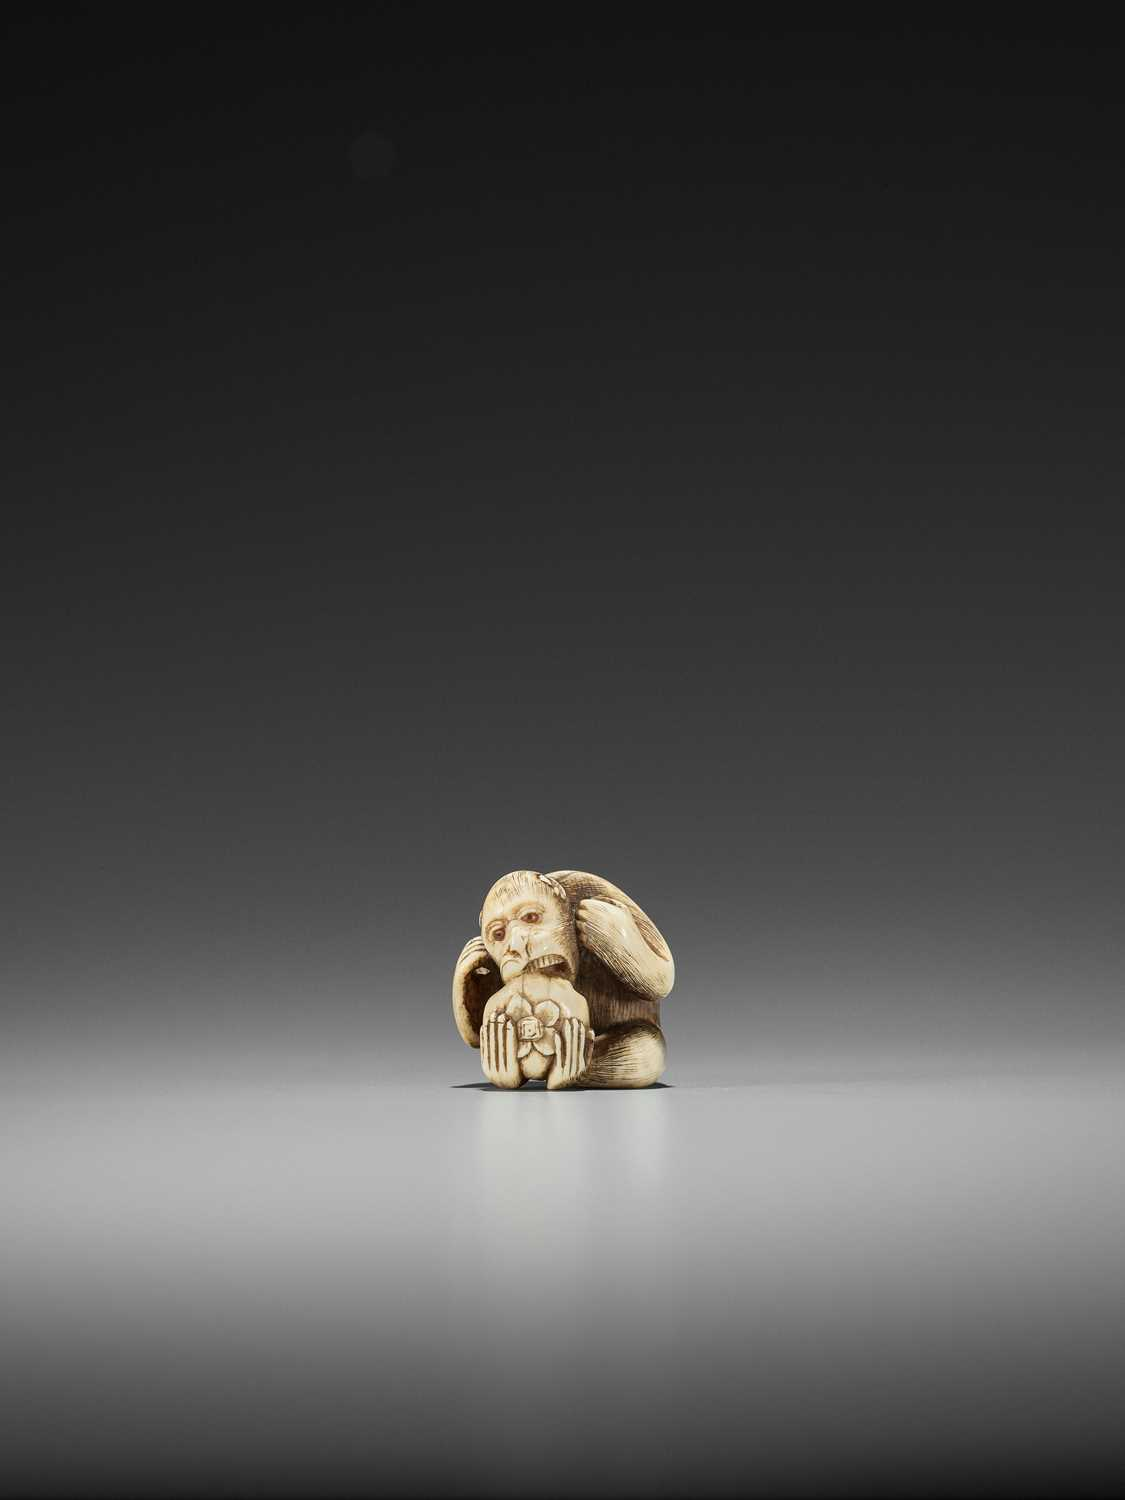 Lot 50-RANMEI: AN IVORY NETSUKE OF A MONKEY WITH PERSIMMON